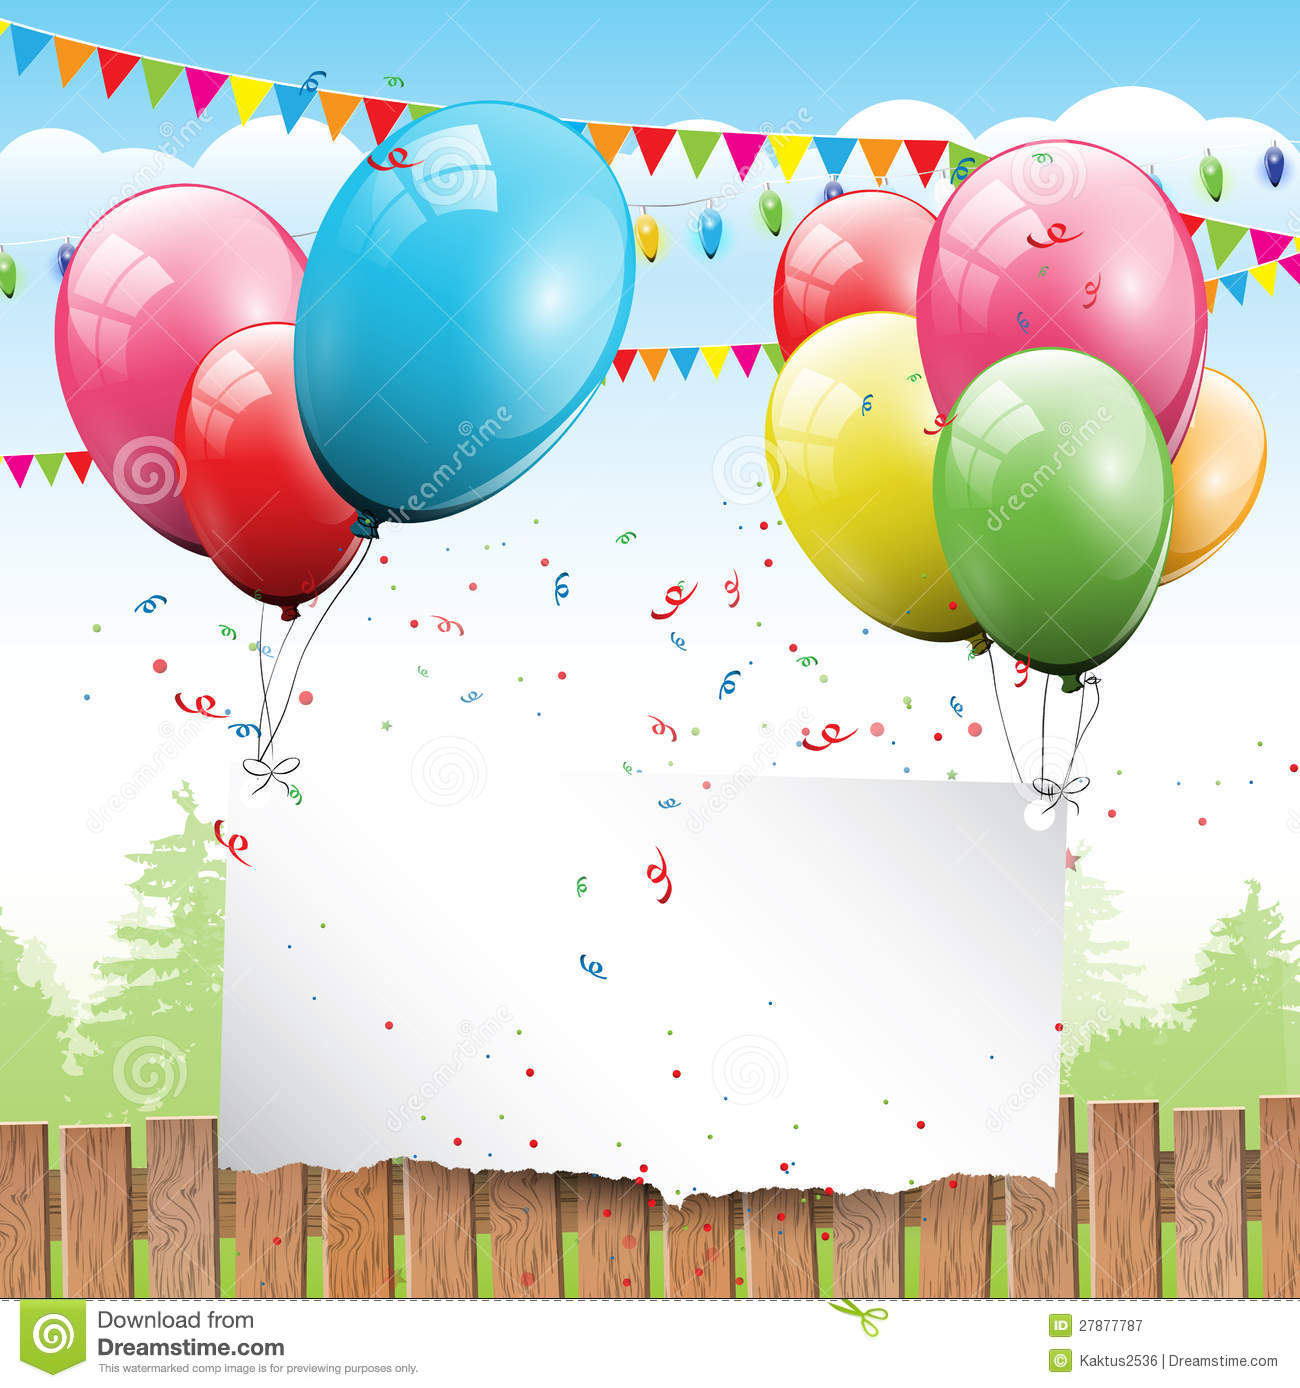 Birthday Background Royalty Free Stock Photography